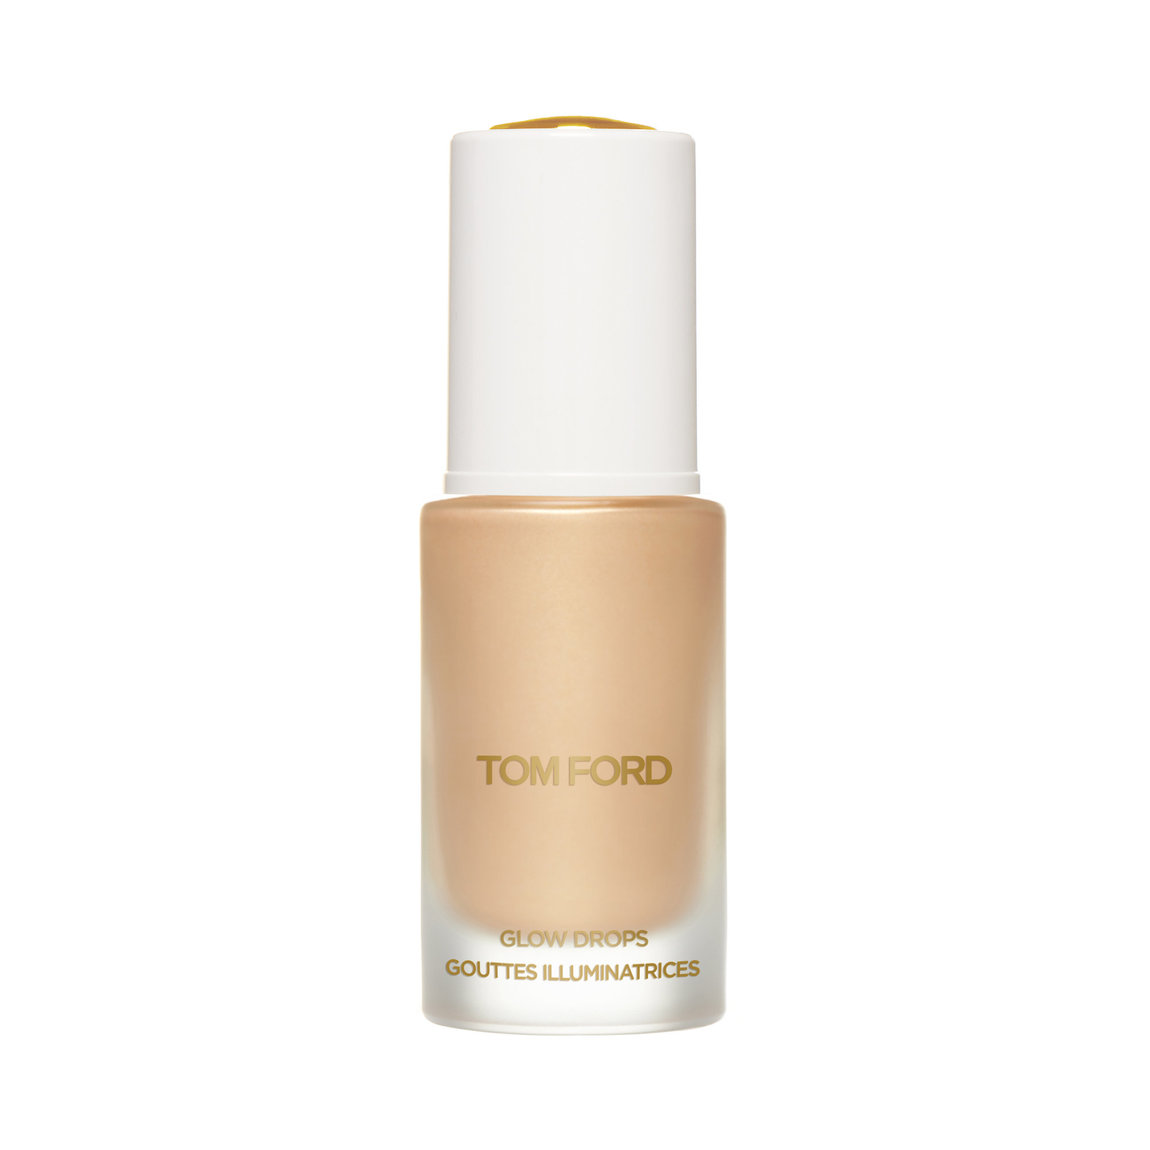 TOM FORD Soleil Glow Drops Liquid Sky product smear.